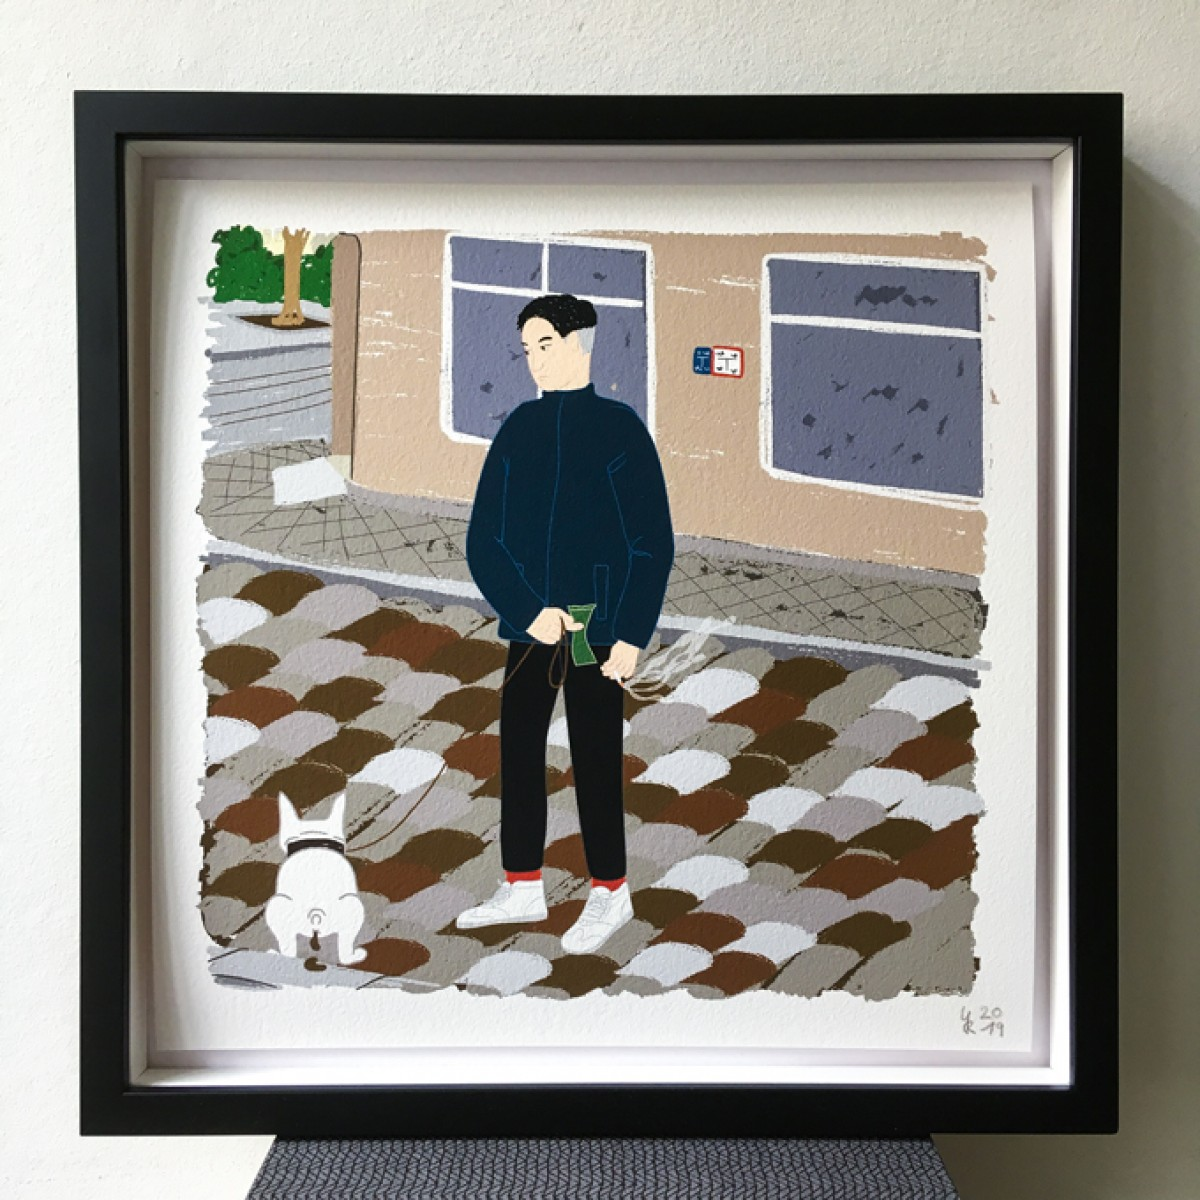 "Neighbour Series ""Neighbour No. 32"" – YUKY RYANG, Giclée-Druck, Format 28 x 28 cm"